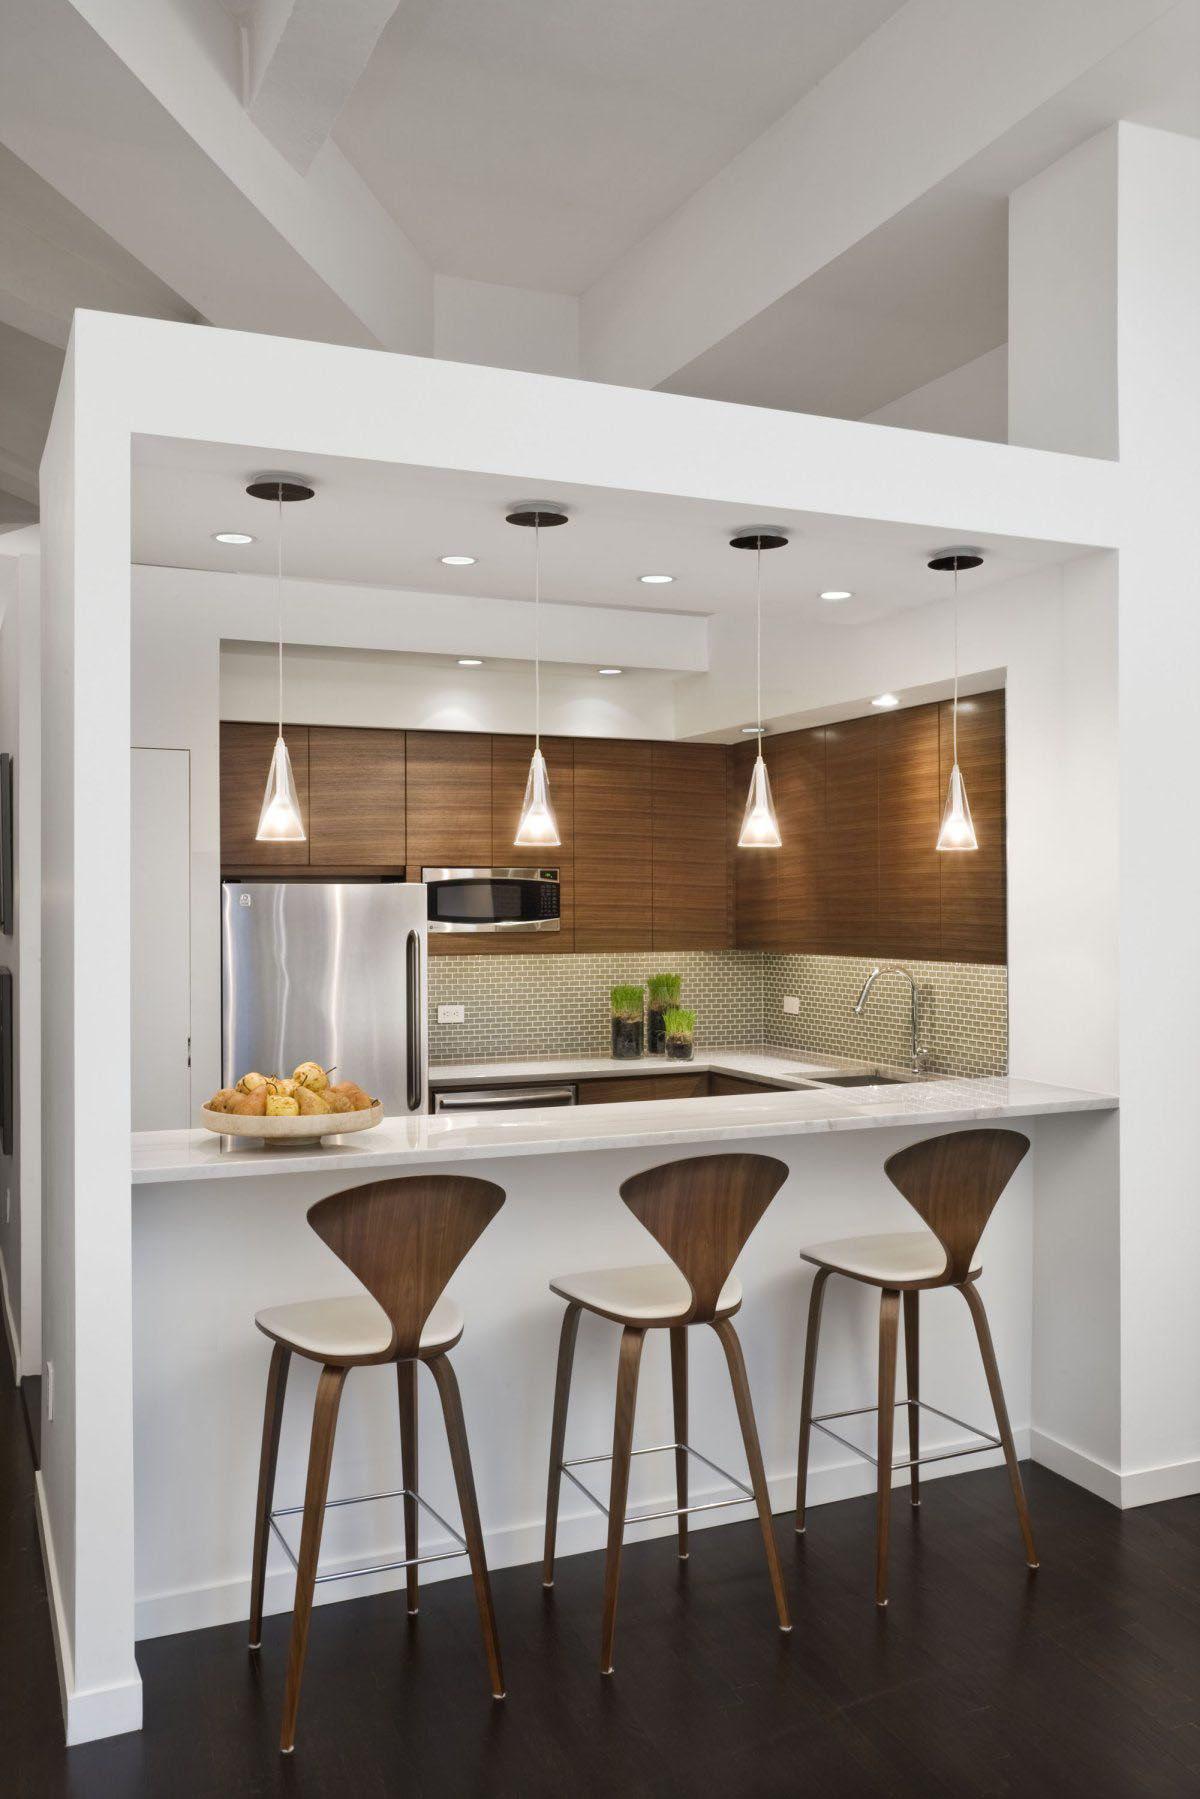 22 Beautiful Kitchen Design For Loft Apartment | Concord ... on ideas for kitchen color schemes, ideas for kitchen makeovers, ideas for cherry kitchen cabinets, ideas for country kitchen cabinets, ideas for organizing the kitchen,